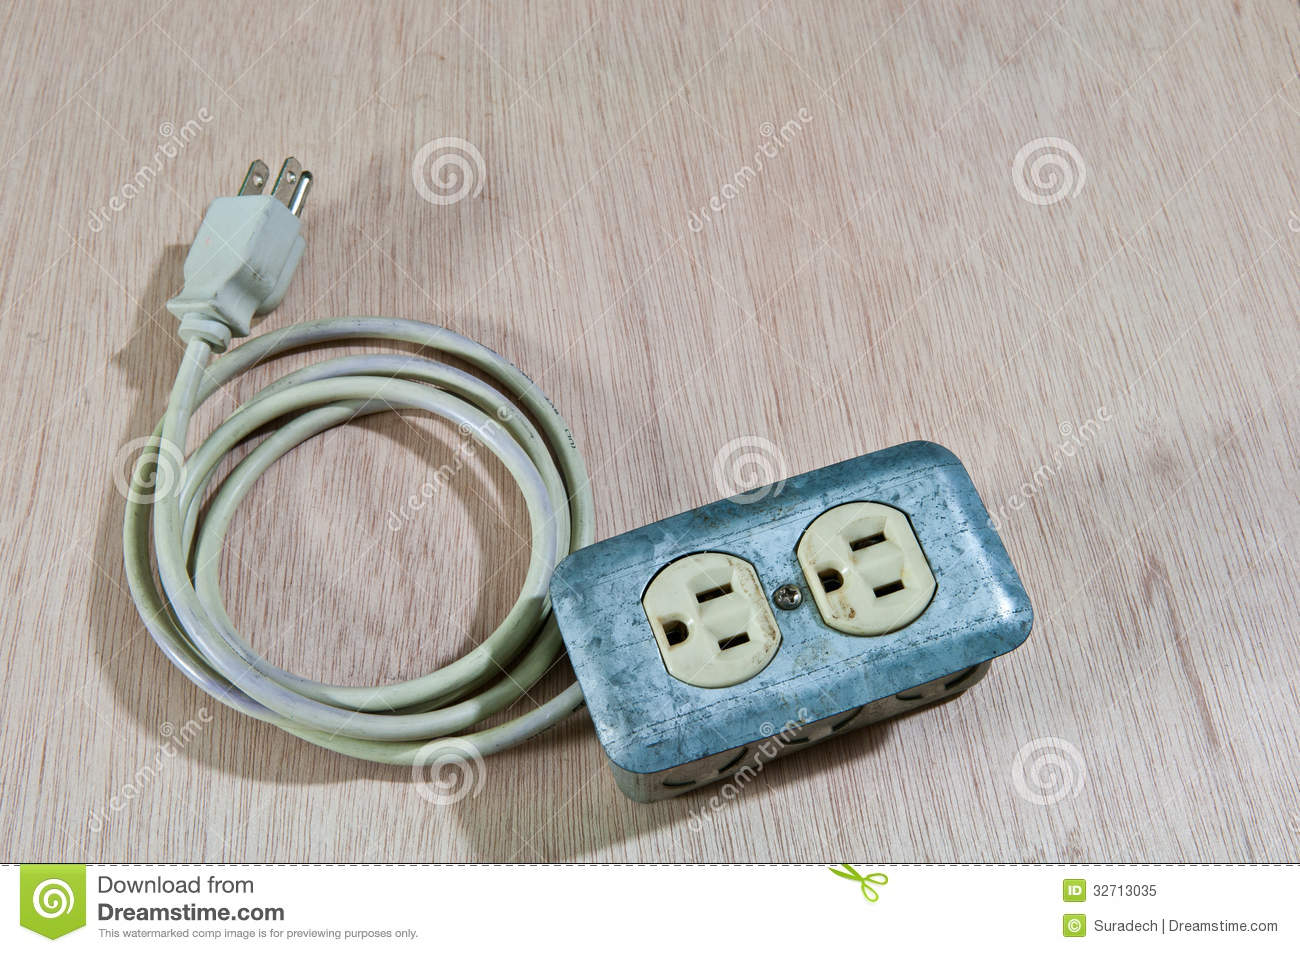 Old Damage Extension Cord Stock Image Of Circuit 32713035 Wiring A Cordwood House